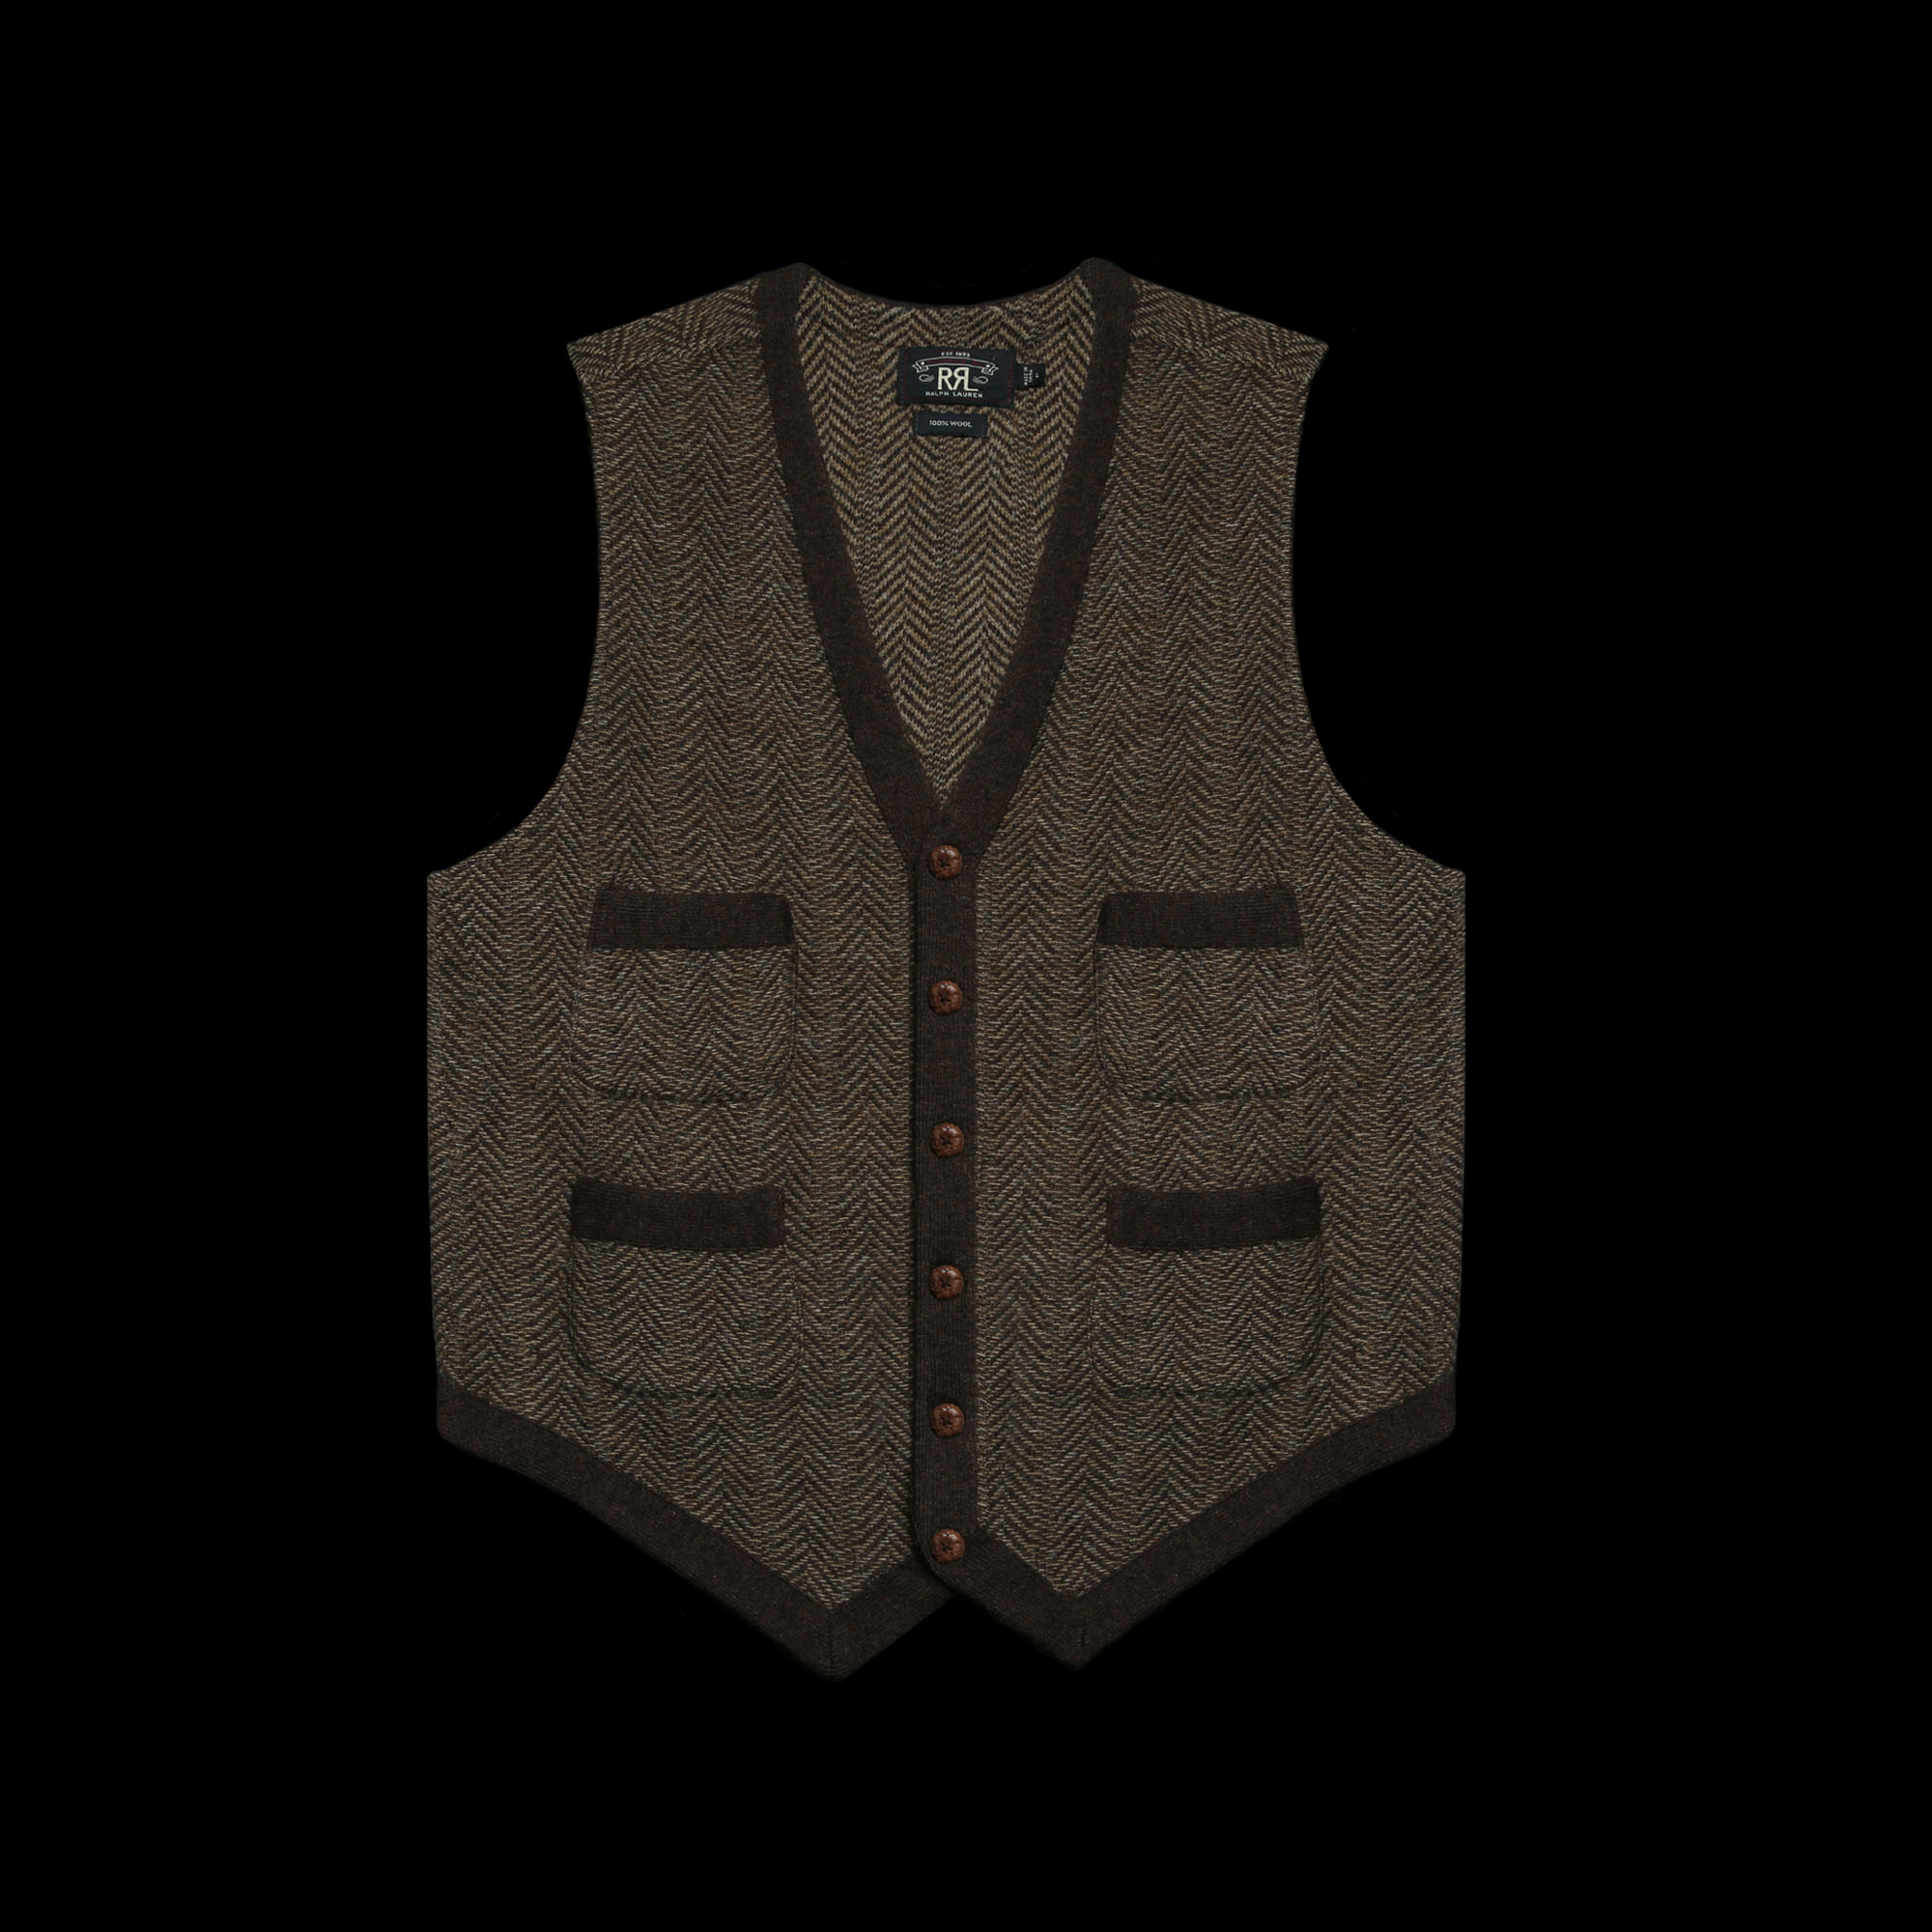 RRLWOOL SWEATER KNITVEST